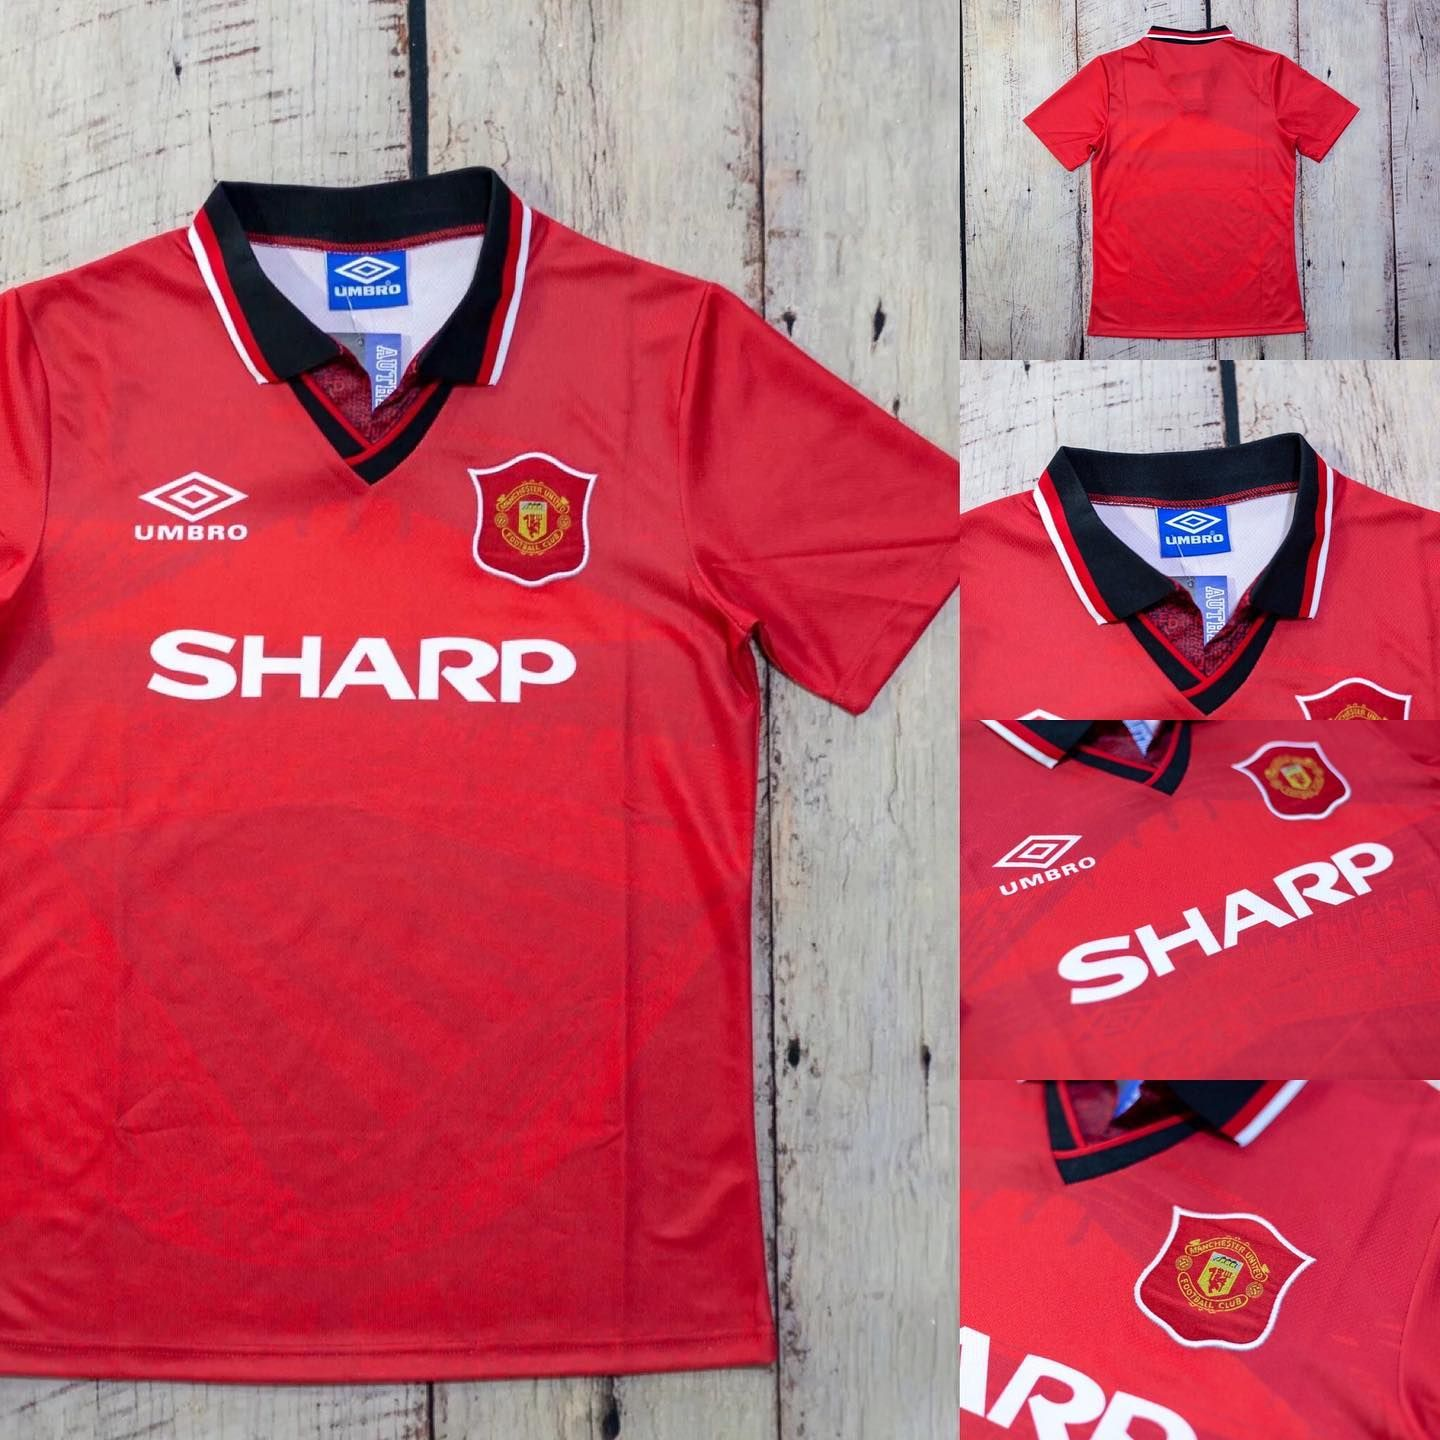 94 96 Manchester United Home Retro Soccer Shirt In Stock Link In Bio Price 19 99 29 99 Free Shipping M In 2020 Soccer Shirts Football Is Life Mens Tops